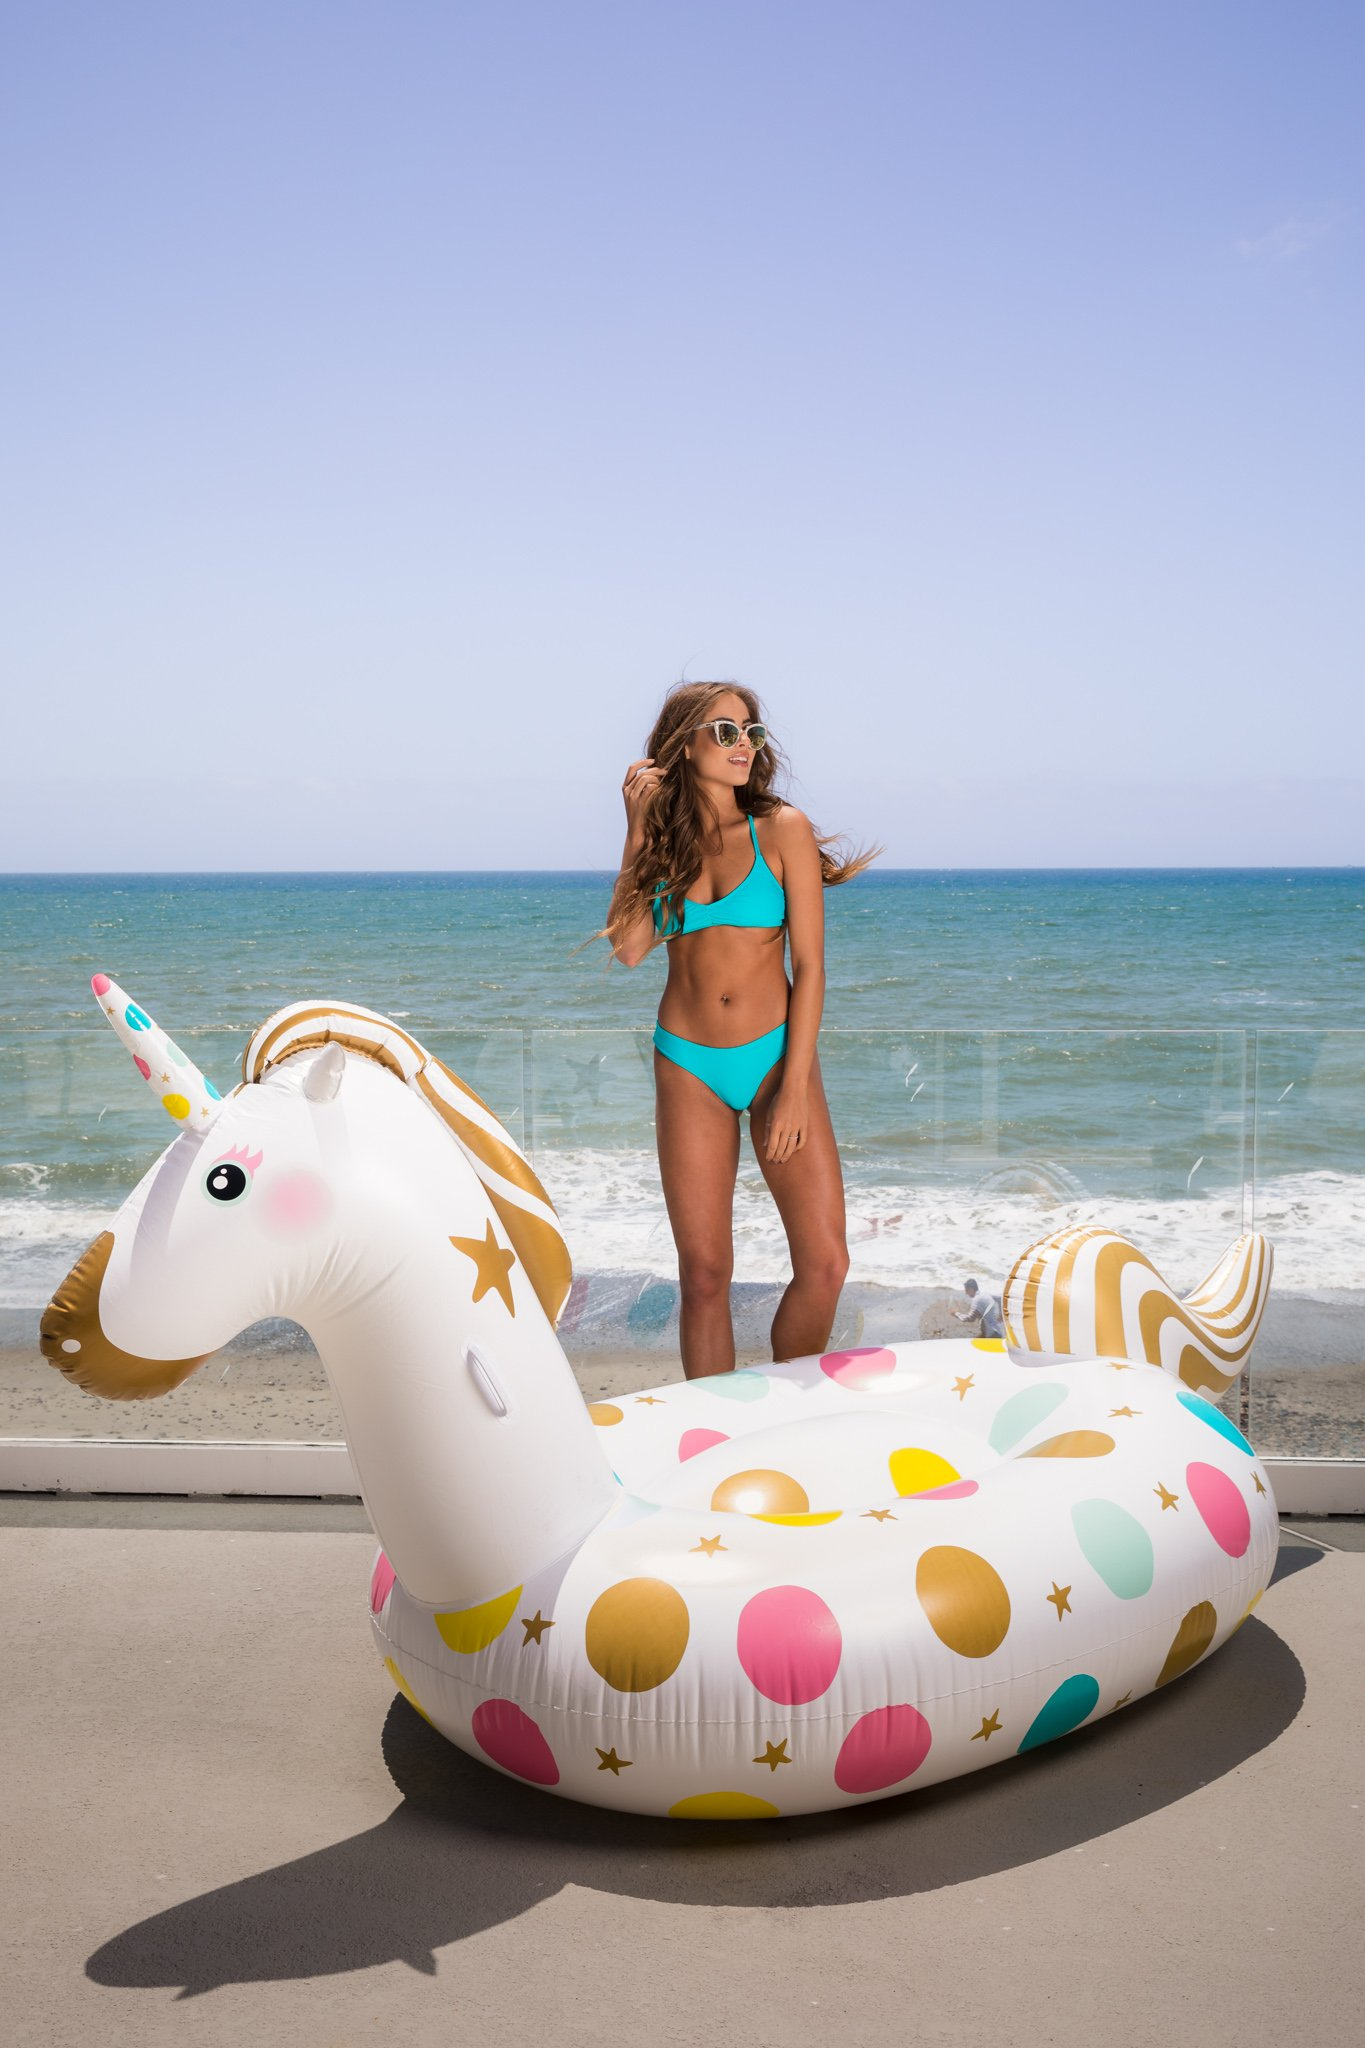 Unicorn Pool Float - Giant 107 x 44 x 55 Inches Inflatable Giant Unicorn Float Swimming Pool River Raft Float Unicorn… 5